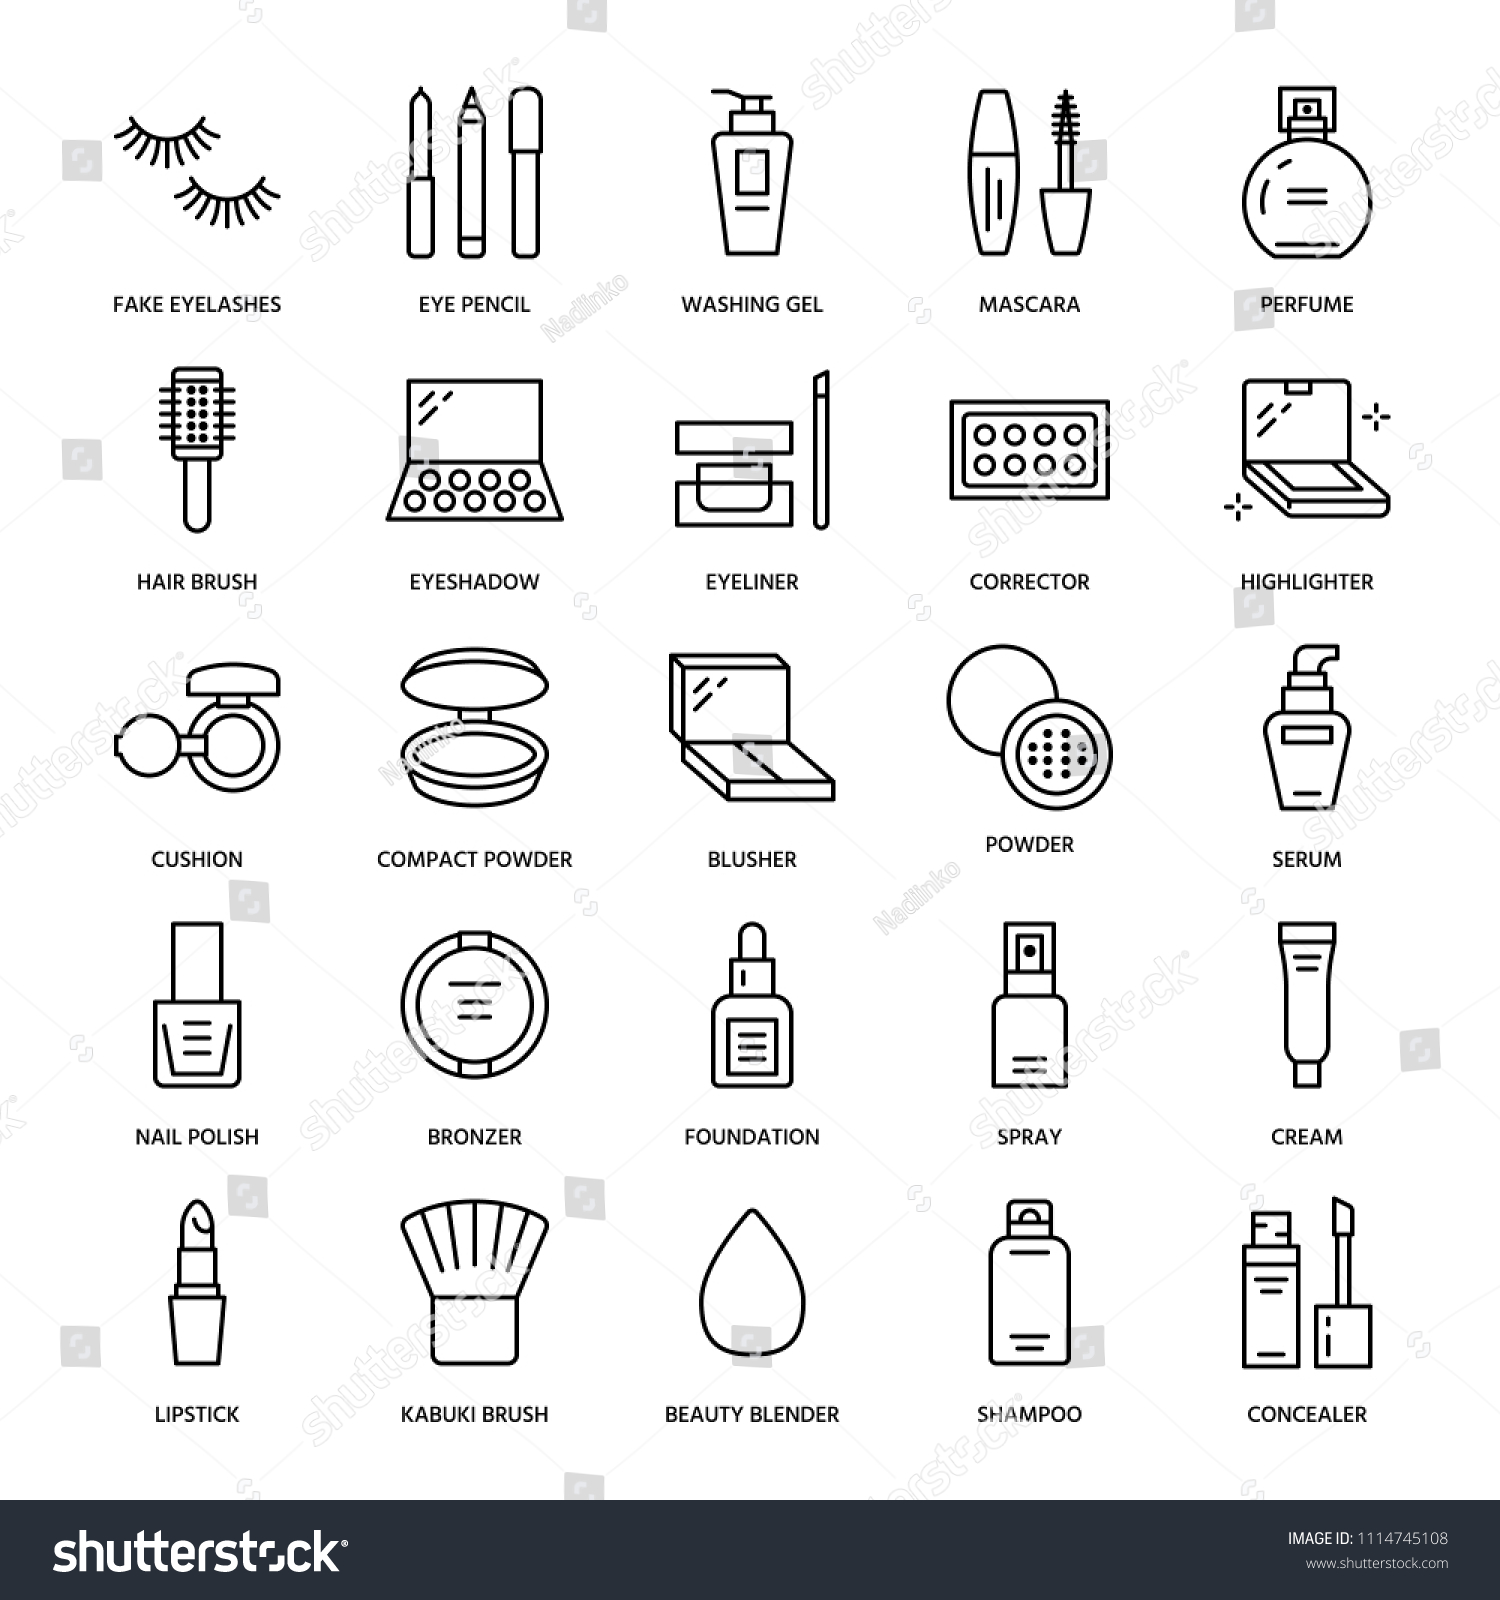 Makeup Beauty Care Flat Line Icons Stock Vector (Royalty